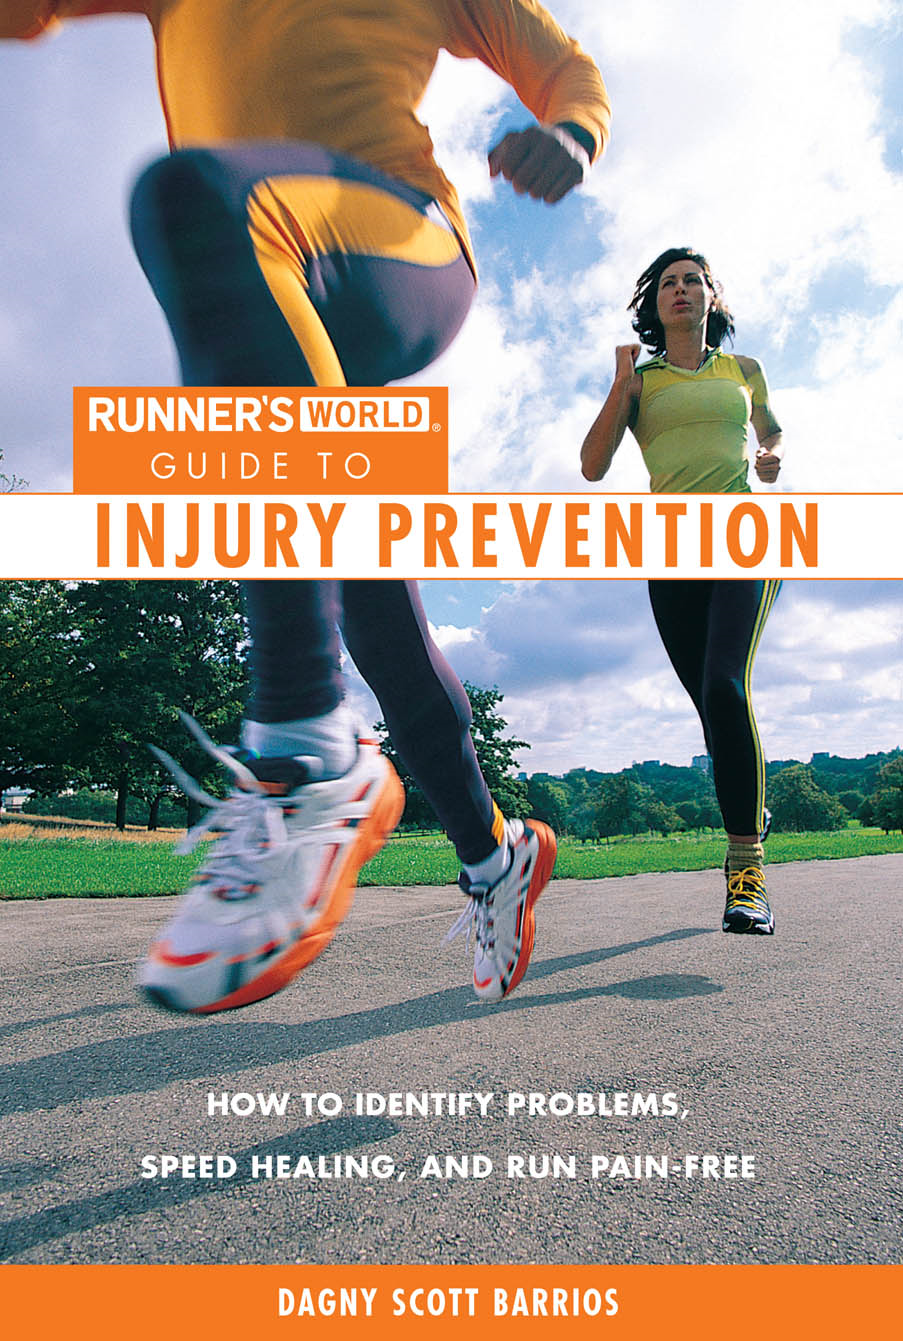 Runner's World's Guide to Injury Prevention